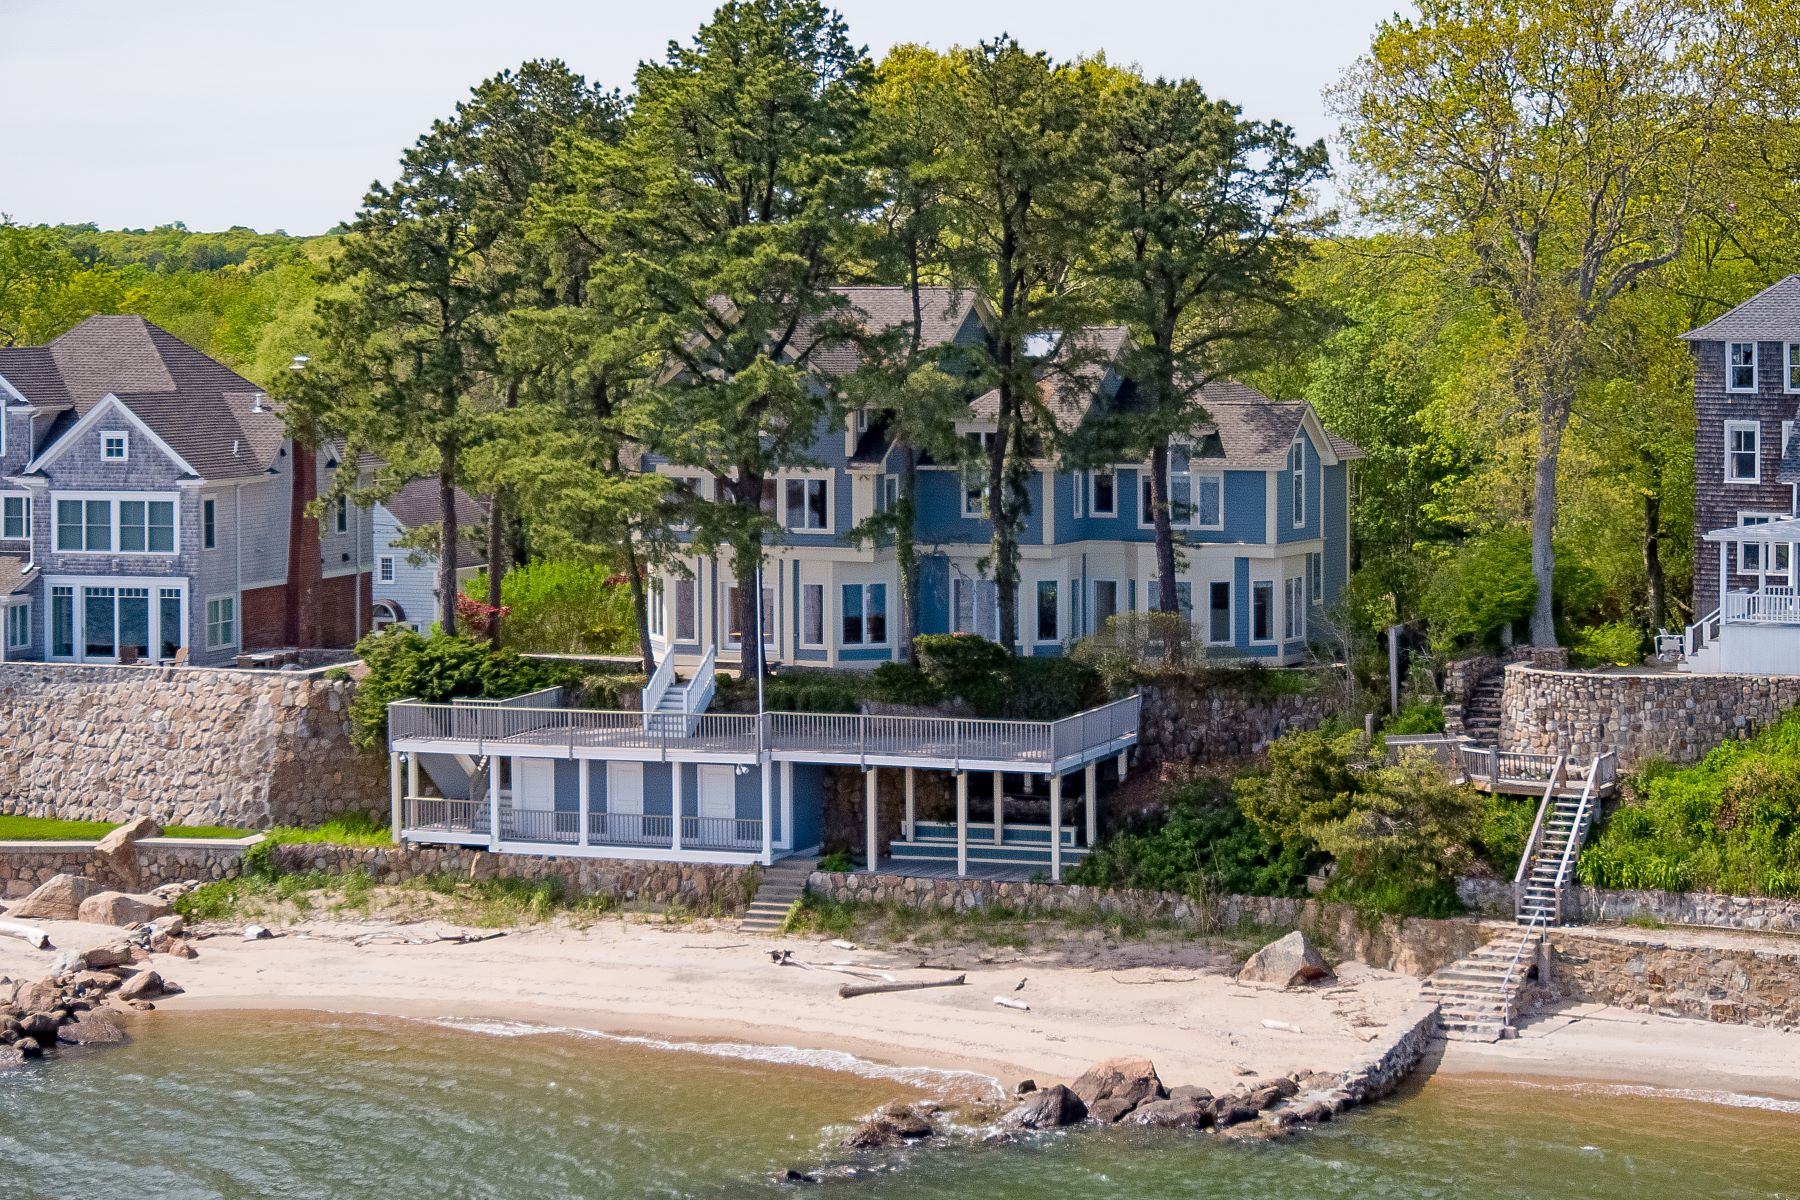 single family homes for Sale at Waterfront - Exemplary construction, quality finishes 81 Groveway, Clinton, Connecticut 06413 United States